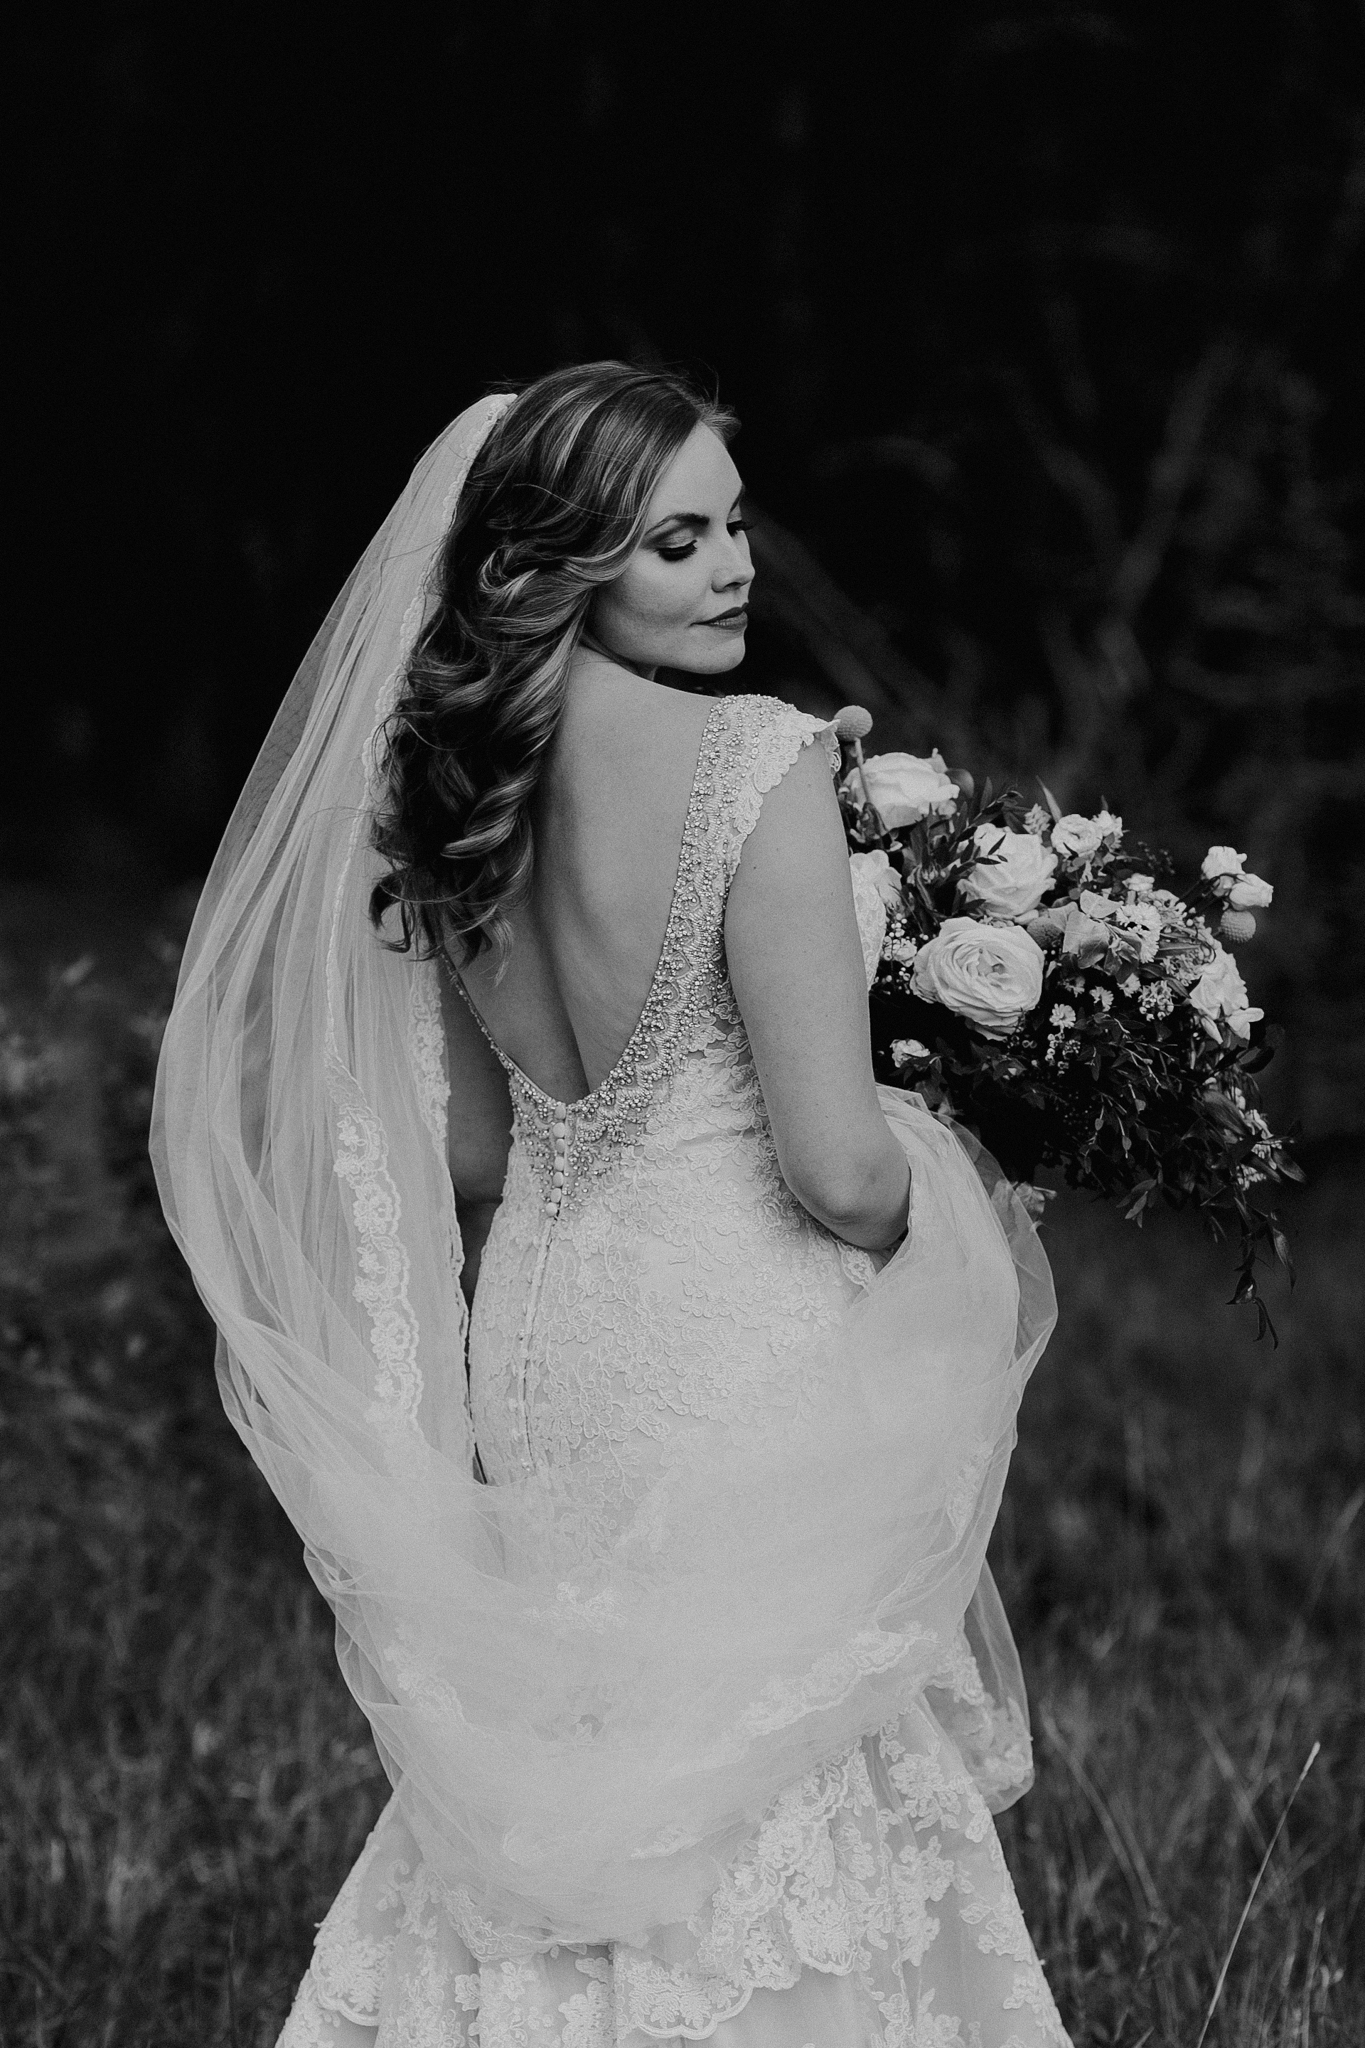 Bride poses for photo in black and white portrait at Silvertip Resort Canmore destination wedding